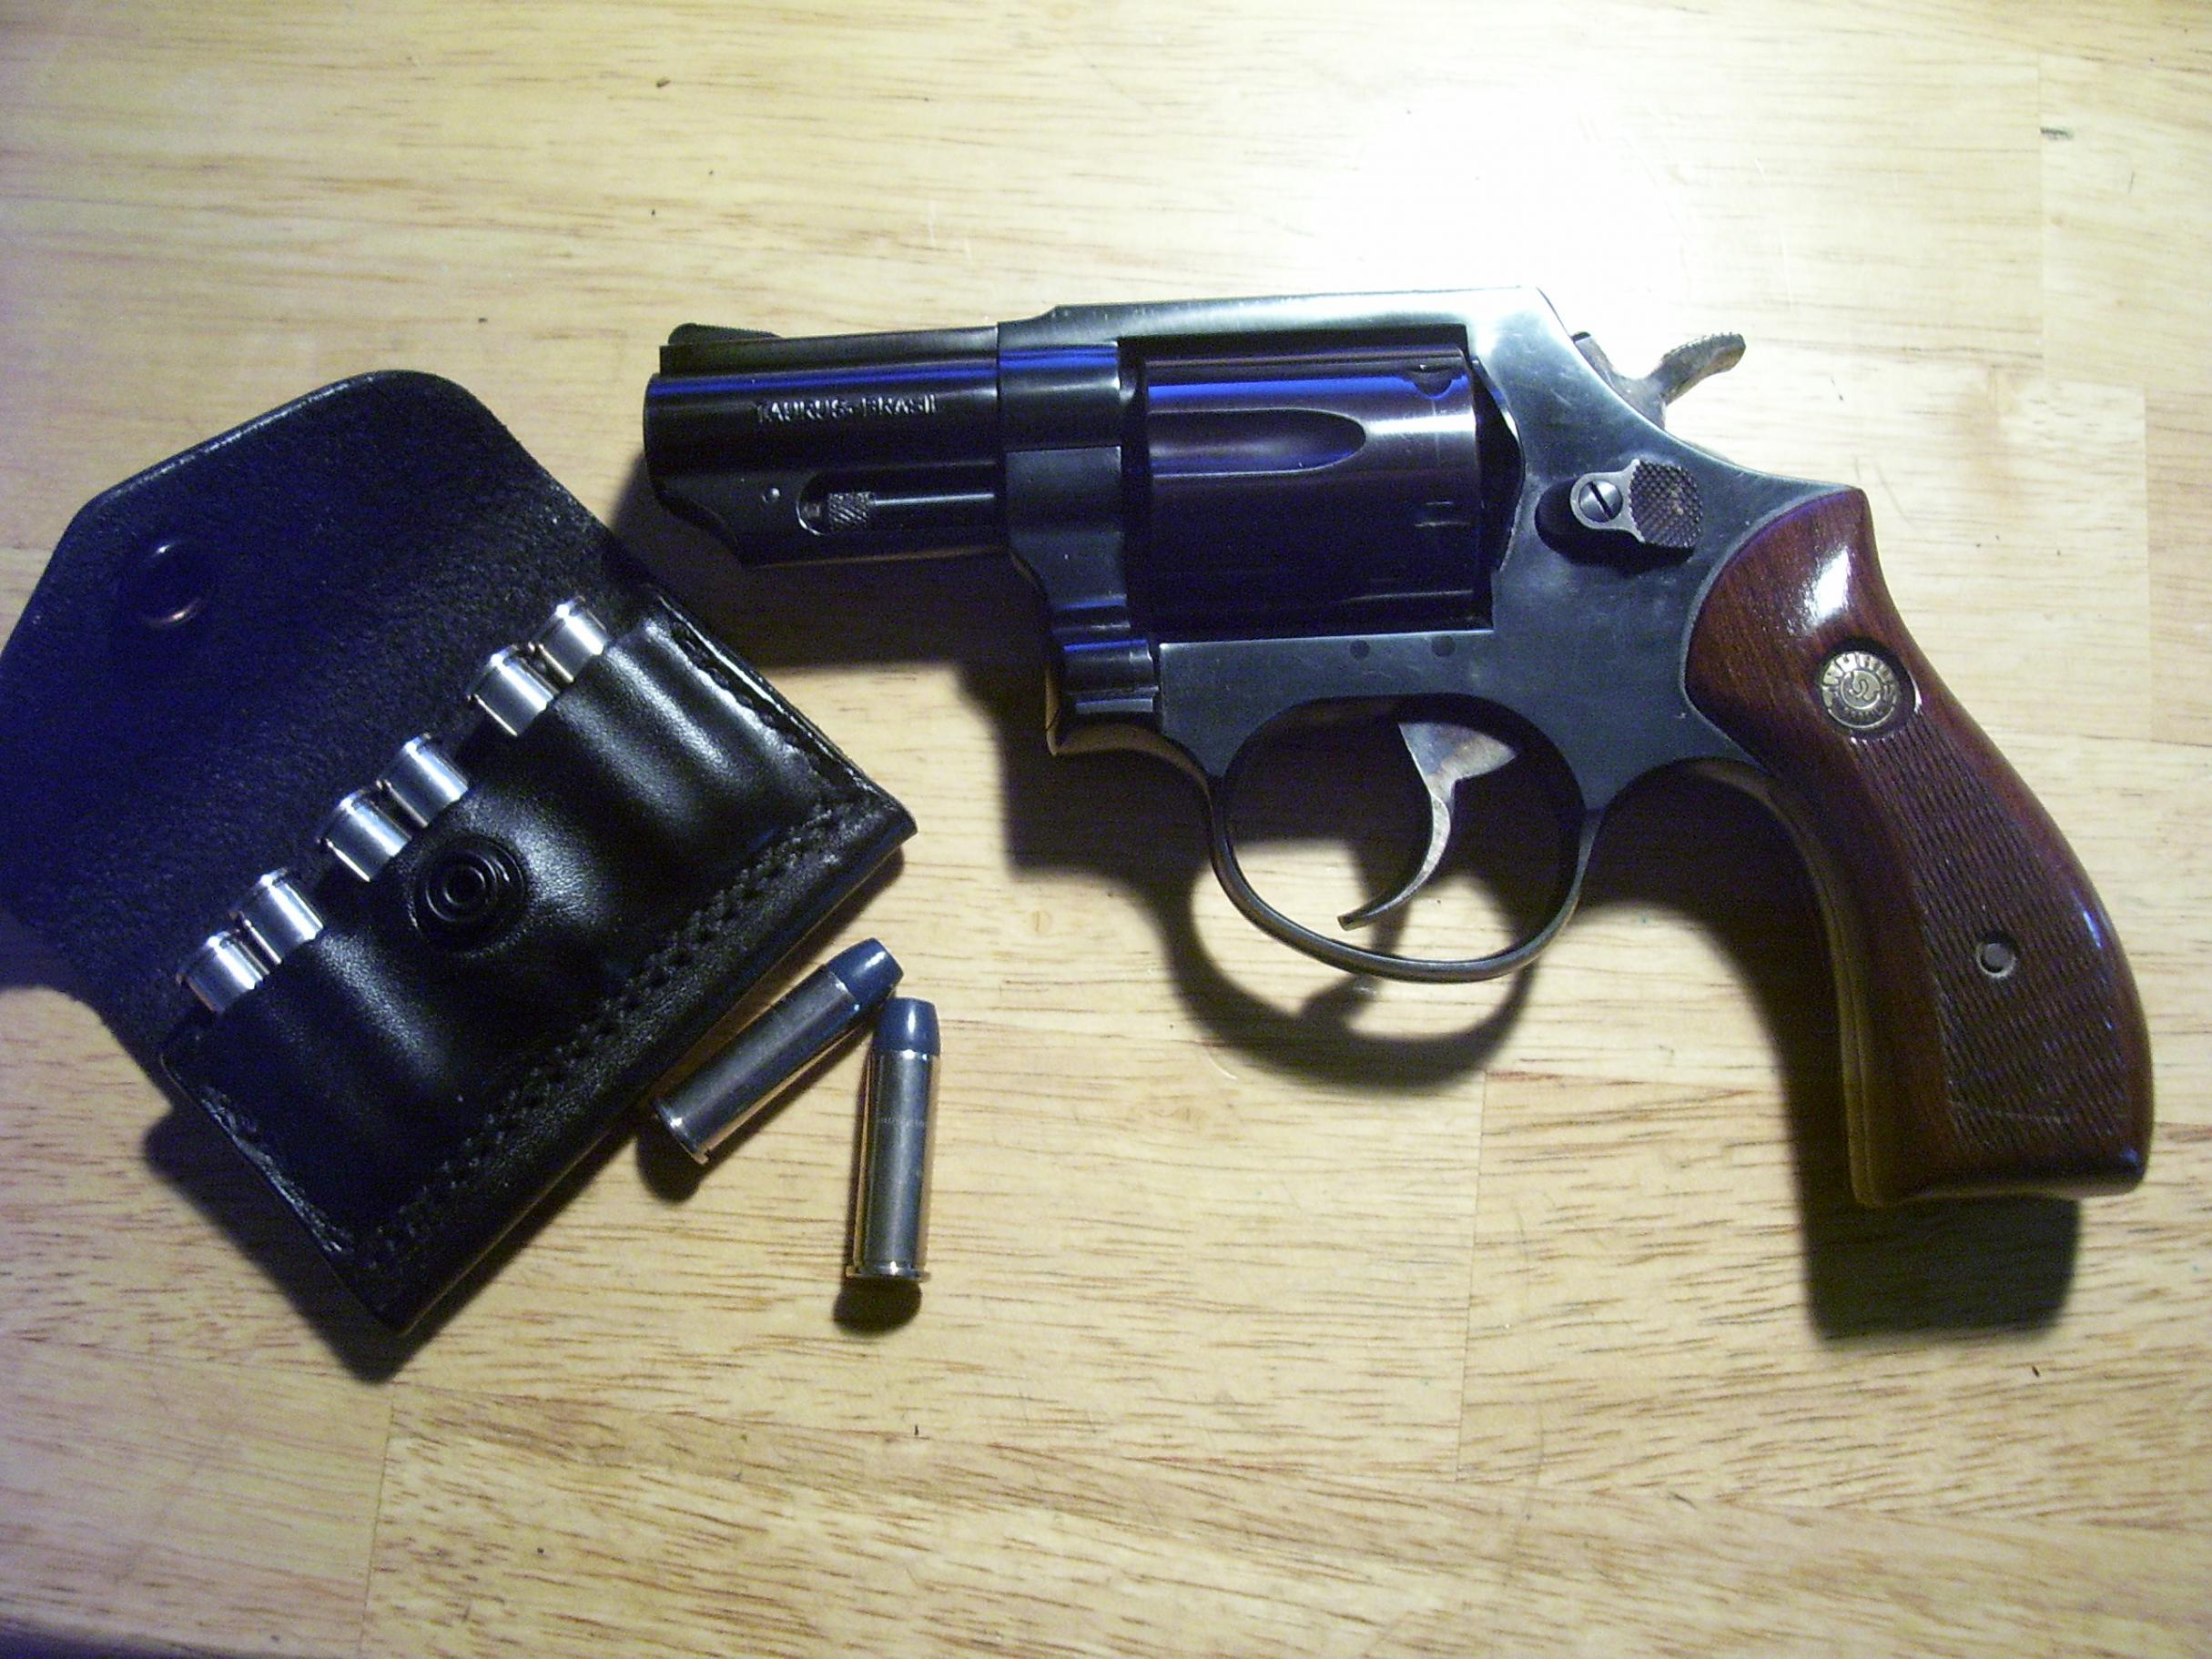 Searching for a horizontal magazine pouch, discreet for CCW on my belt....-taurus-65-.jpg